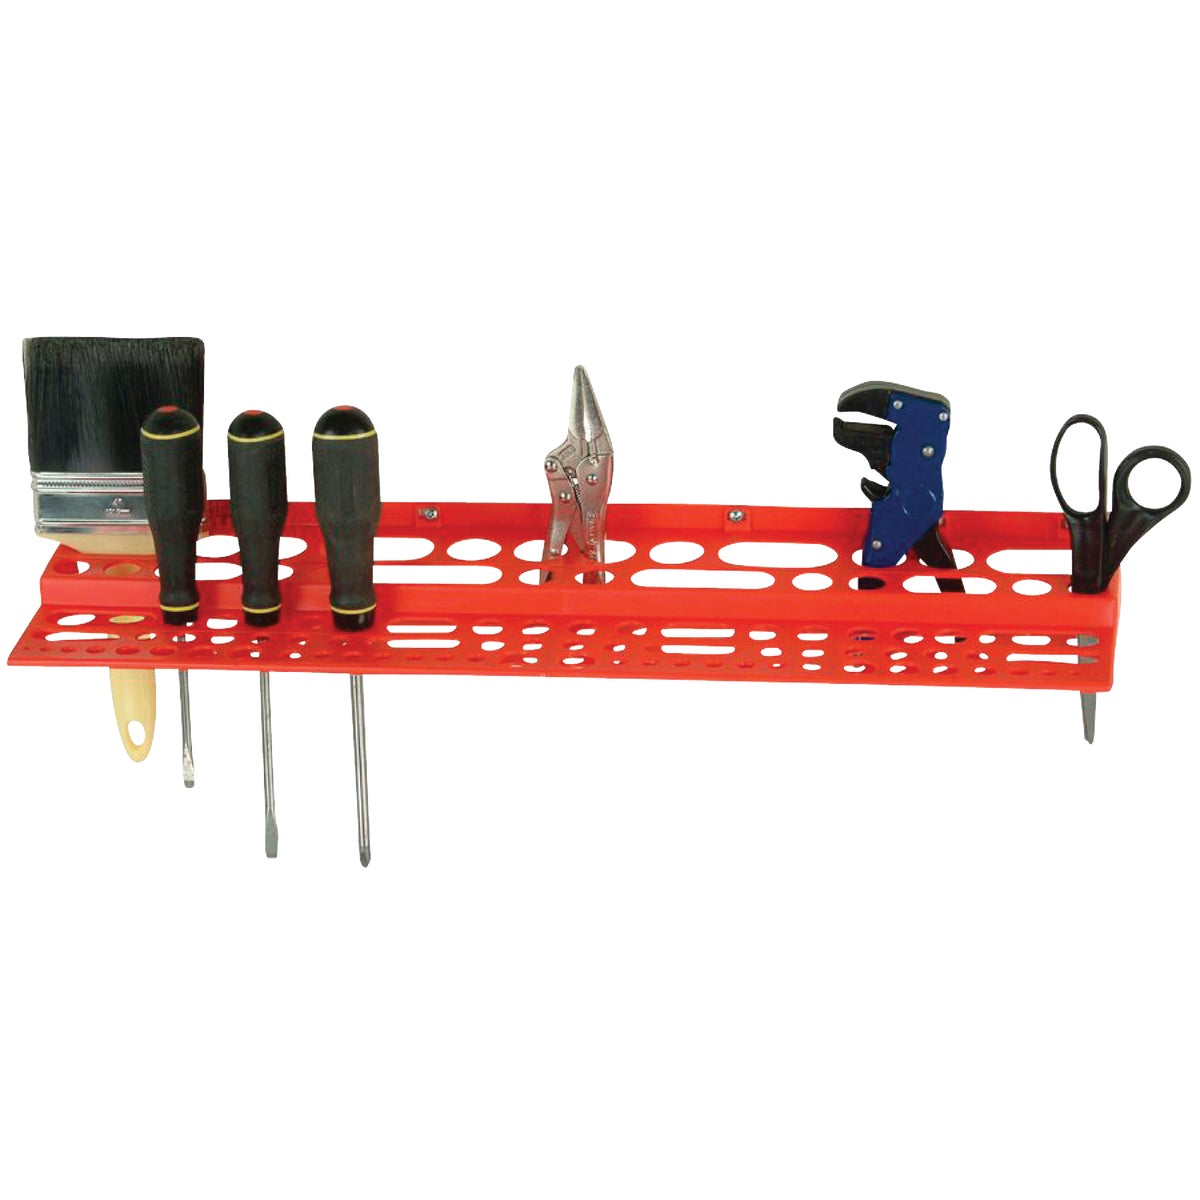 "24"" TOOL RACK - TR24 by Flambeau Products Co"